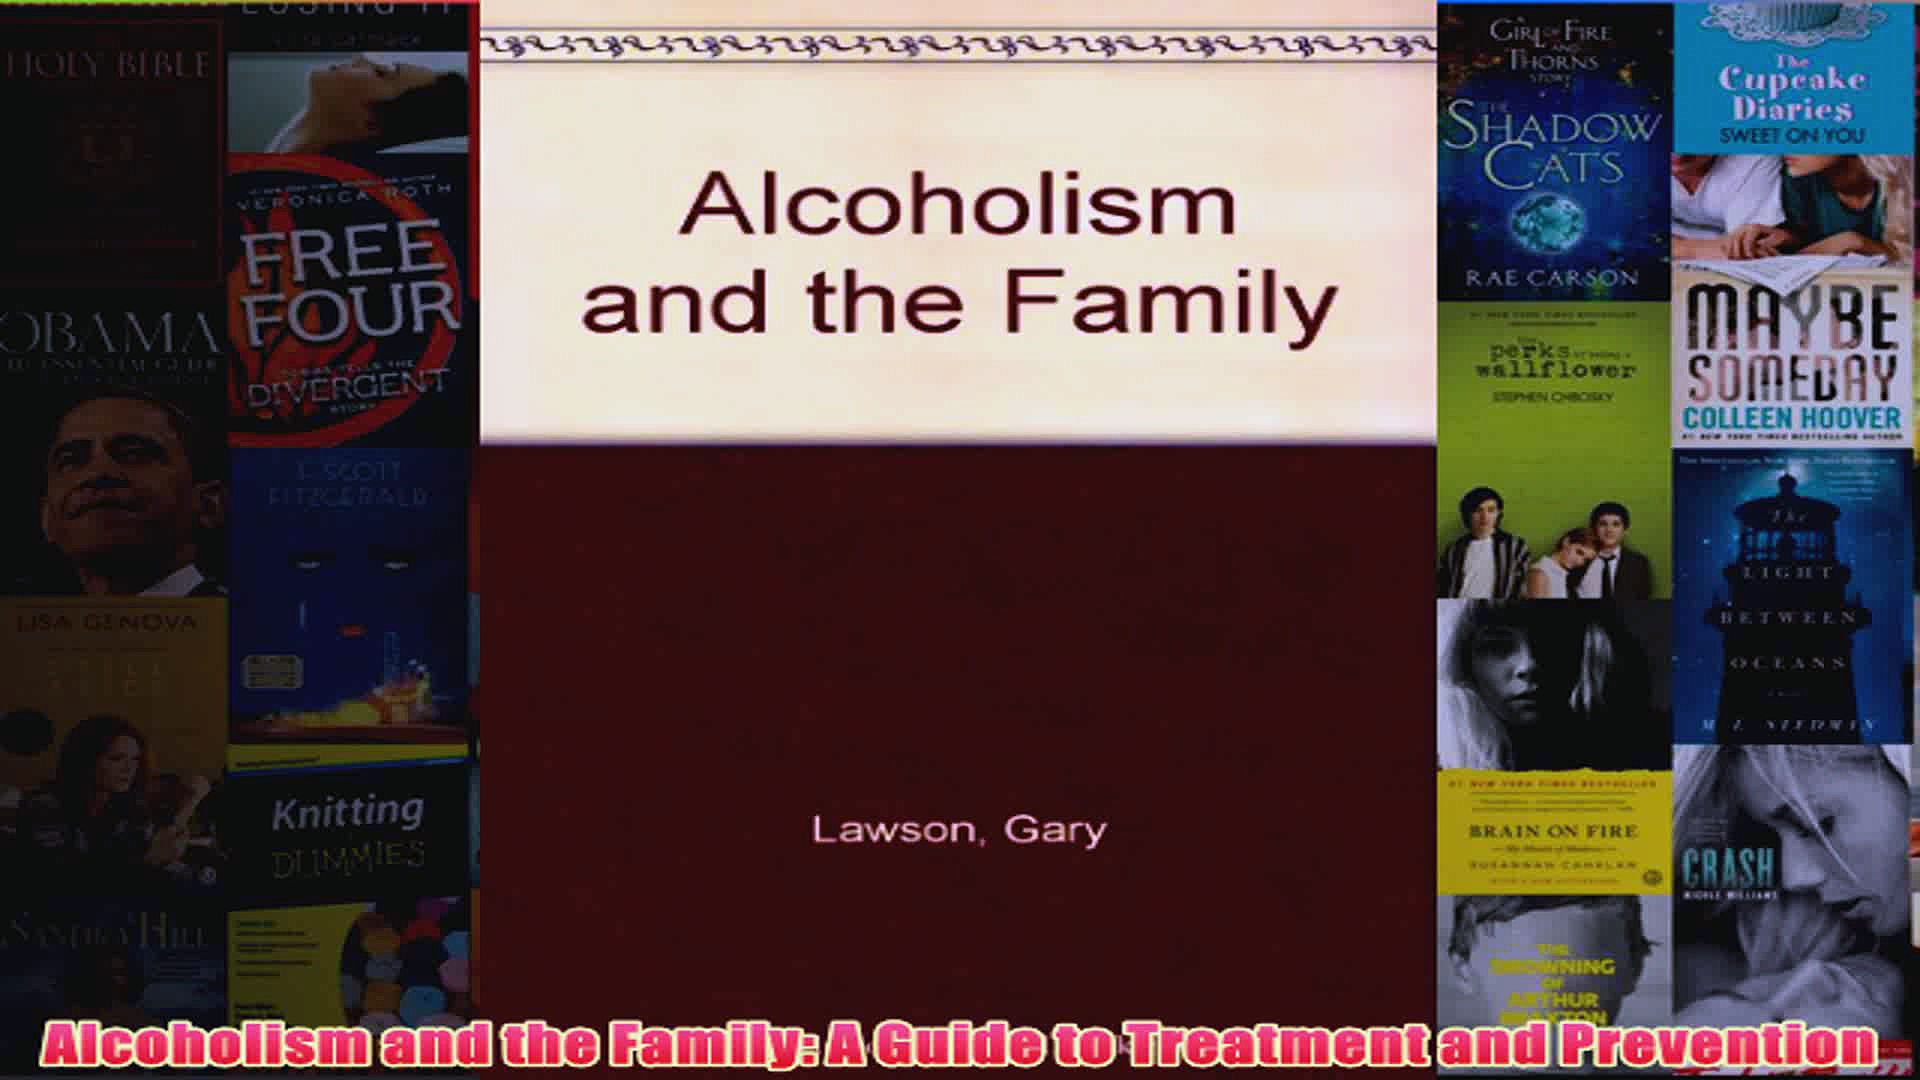 Alcoholism and the Family A Guide to Treatment and Prevention